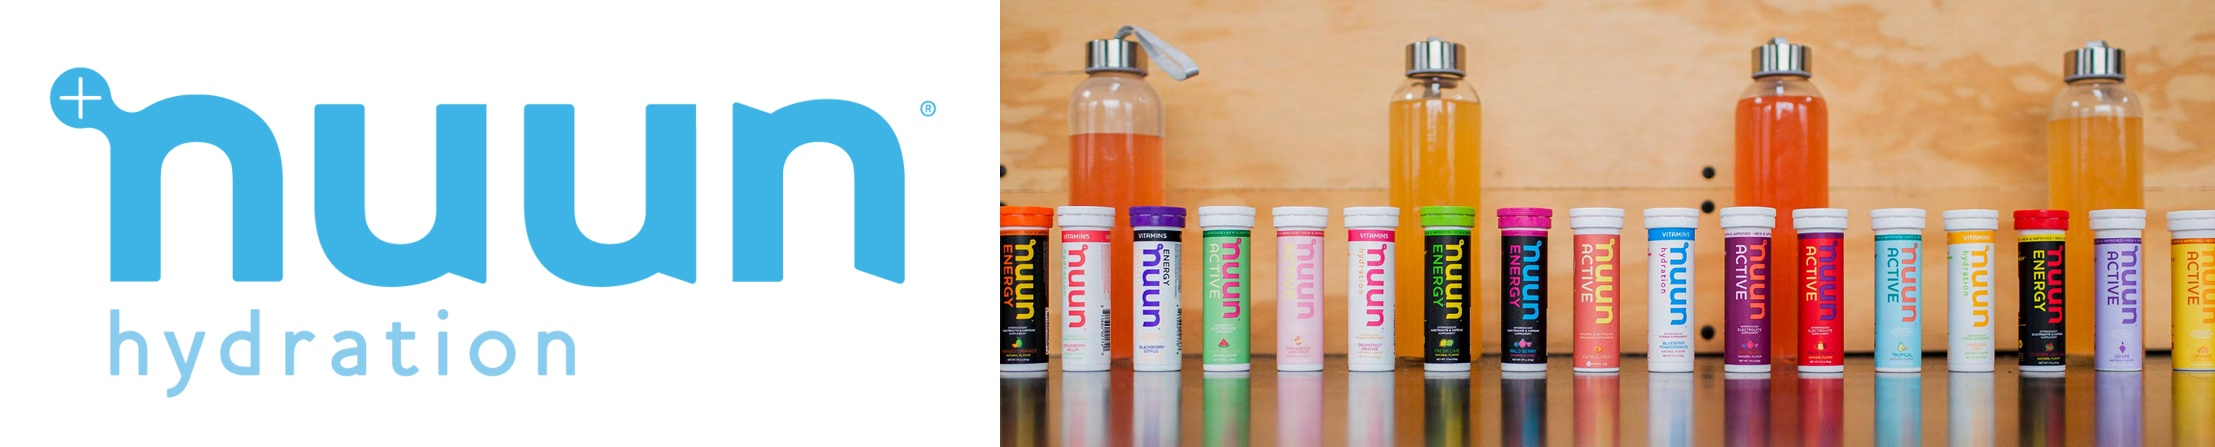 nuun-logo-for-brand-page